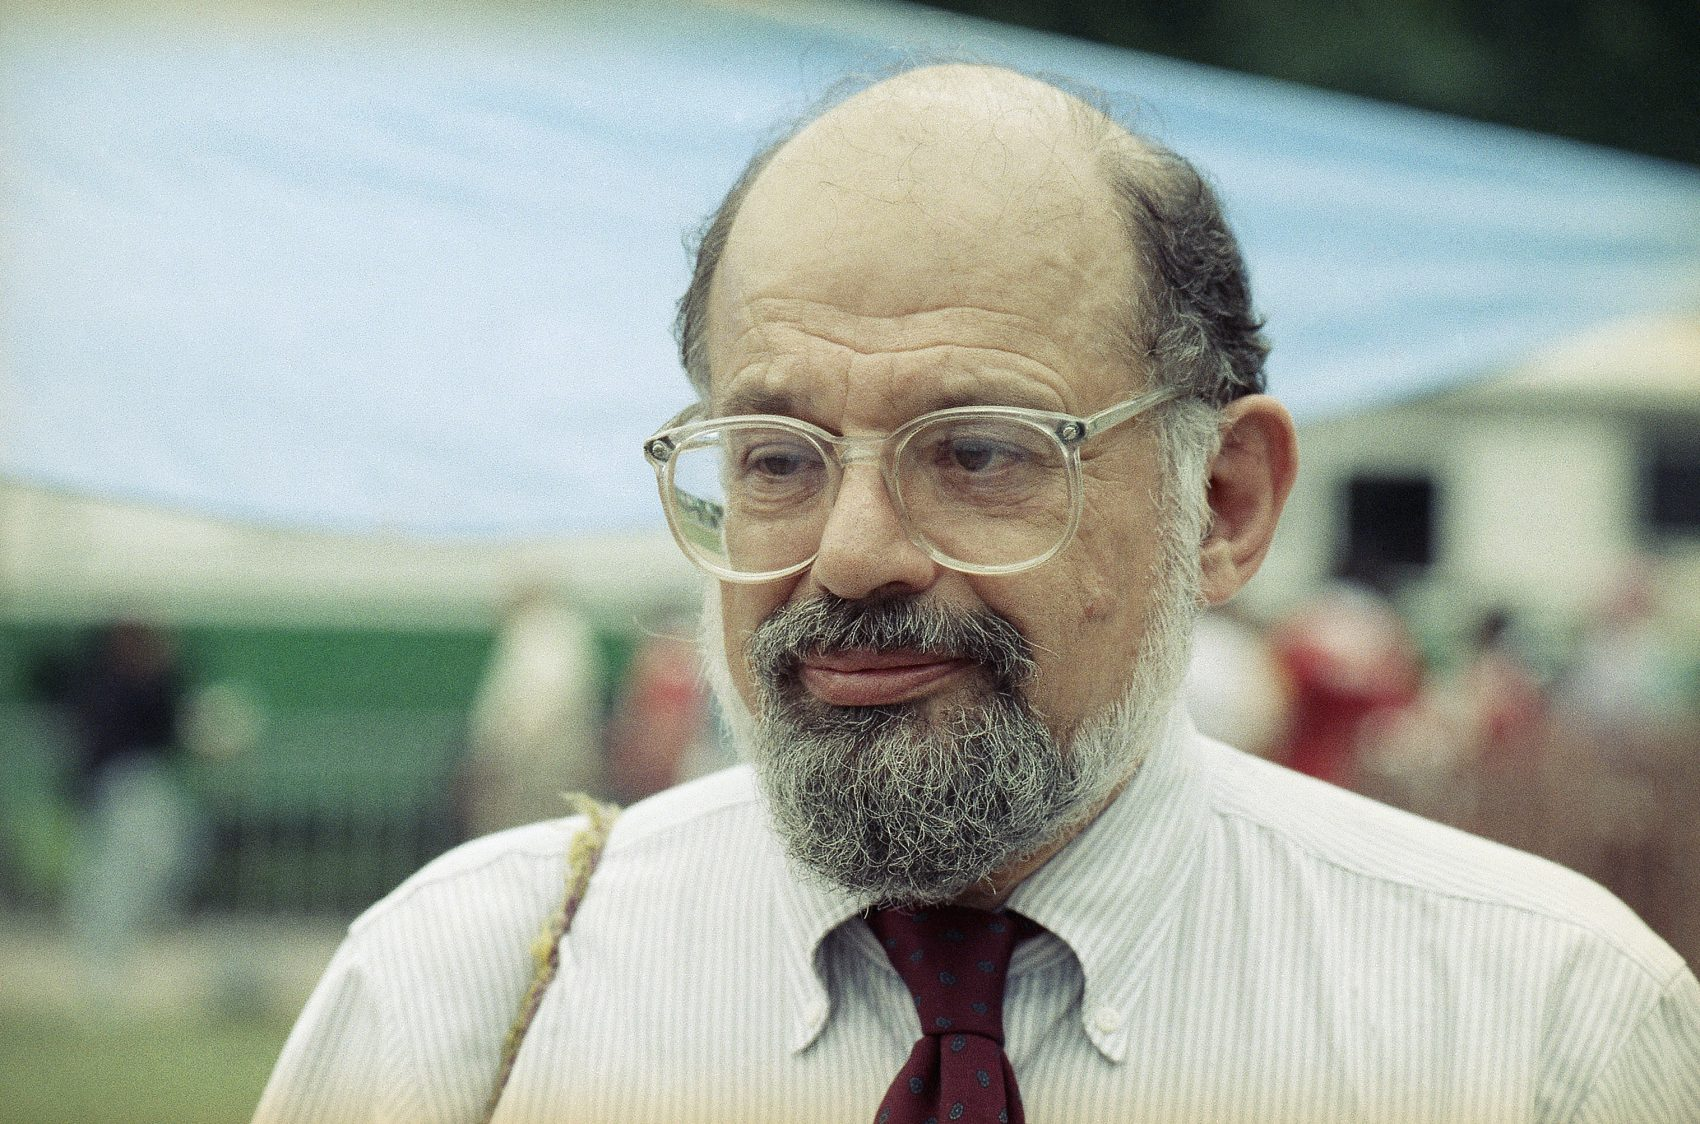 Allen Ginsberg on Car Front At Night